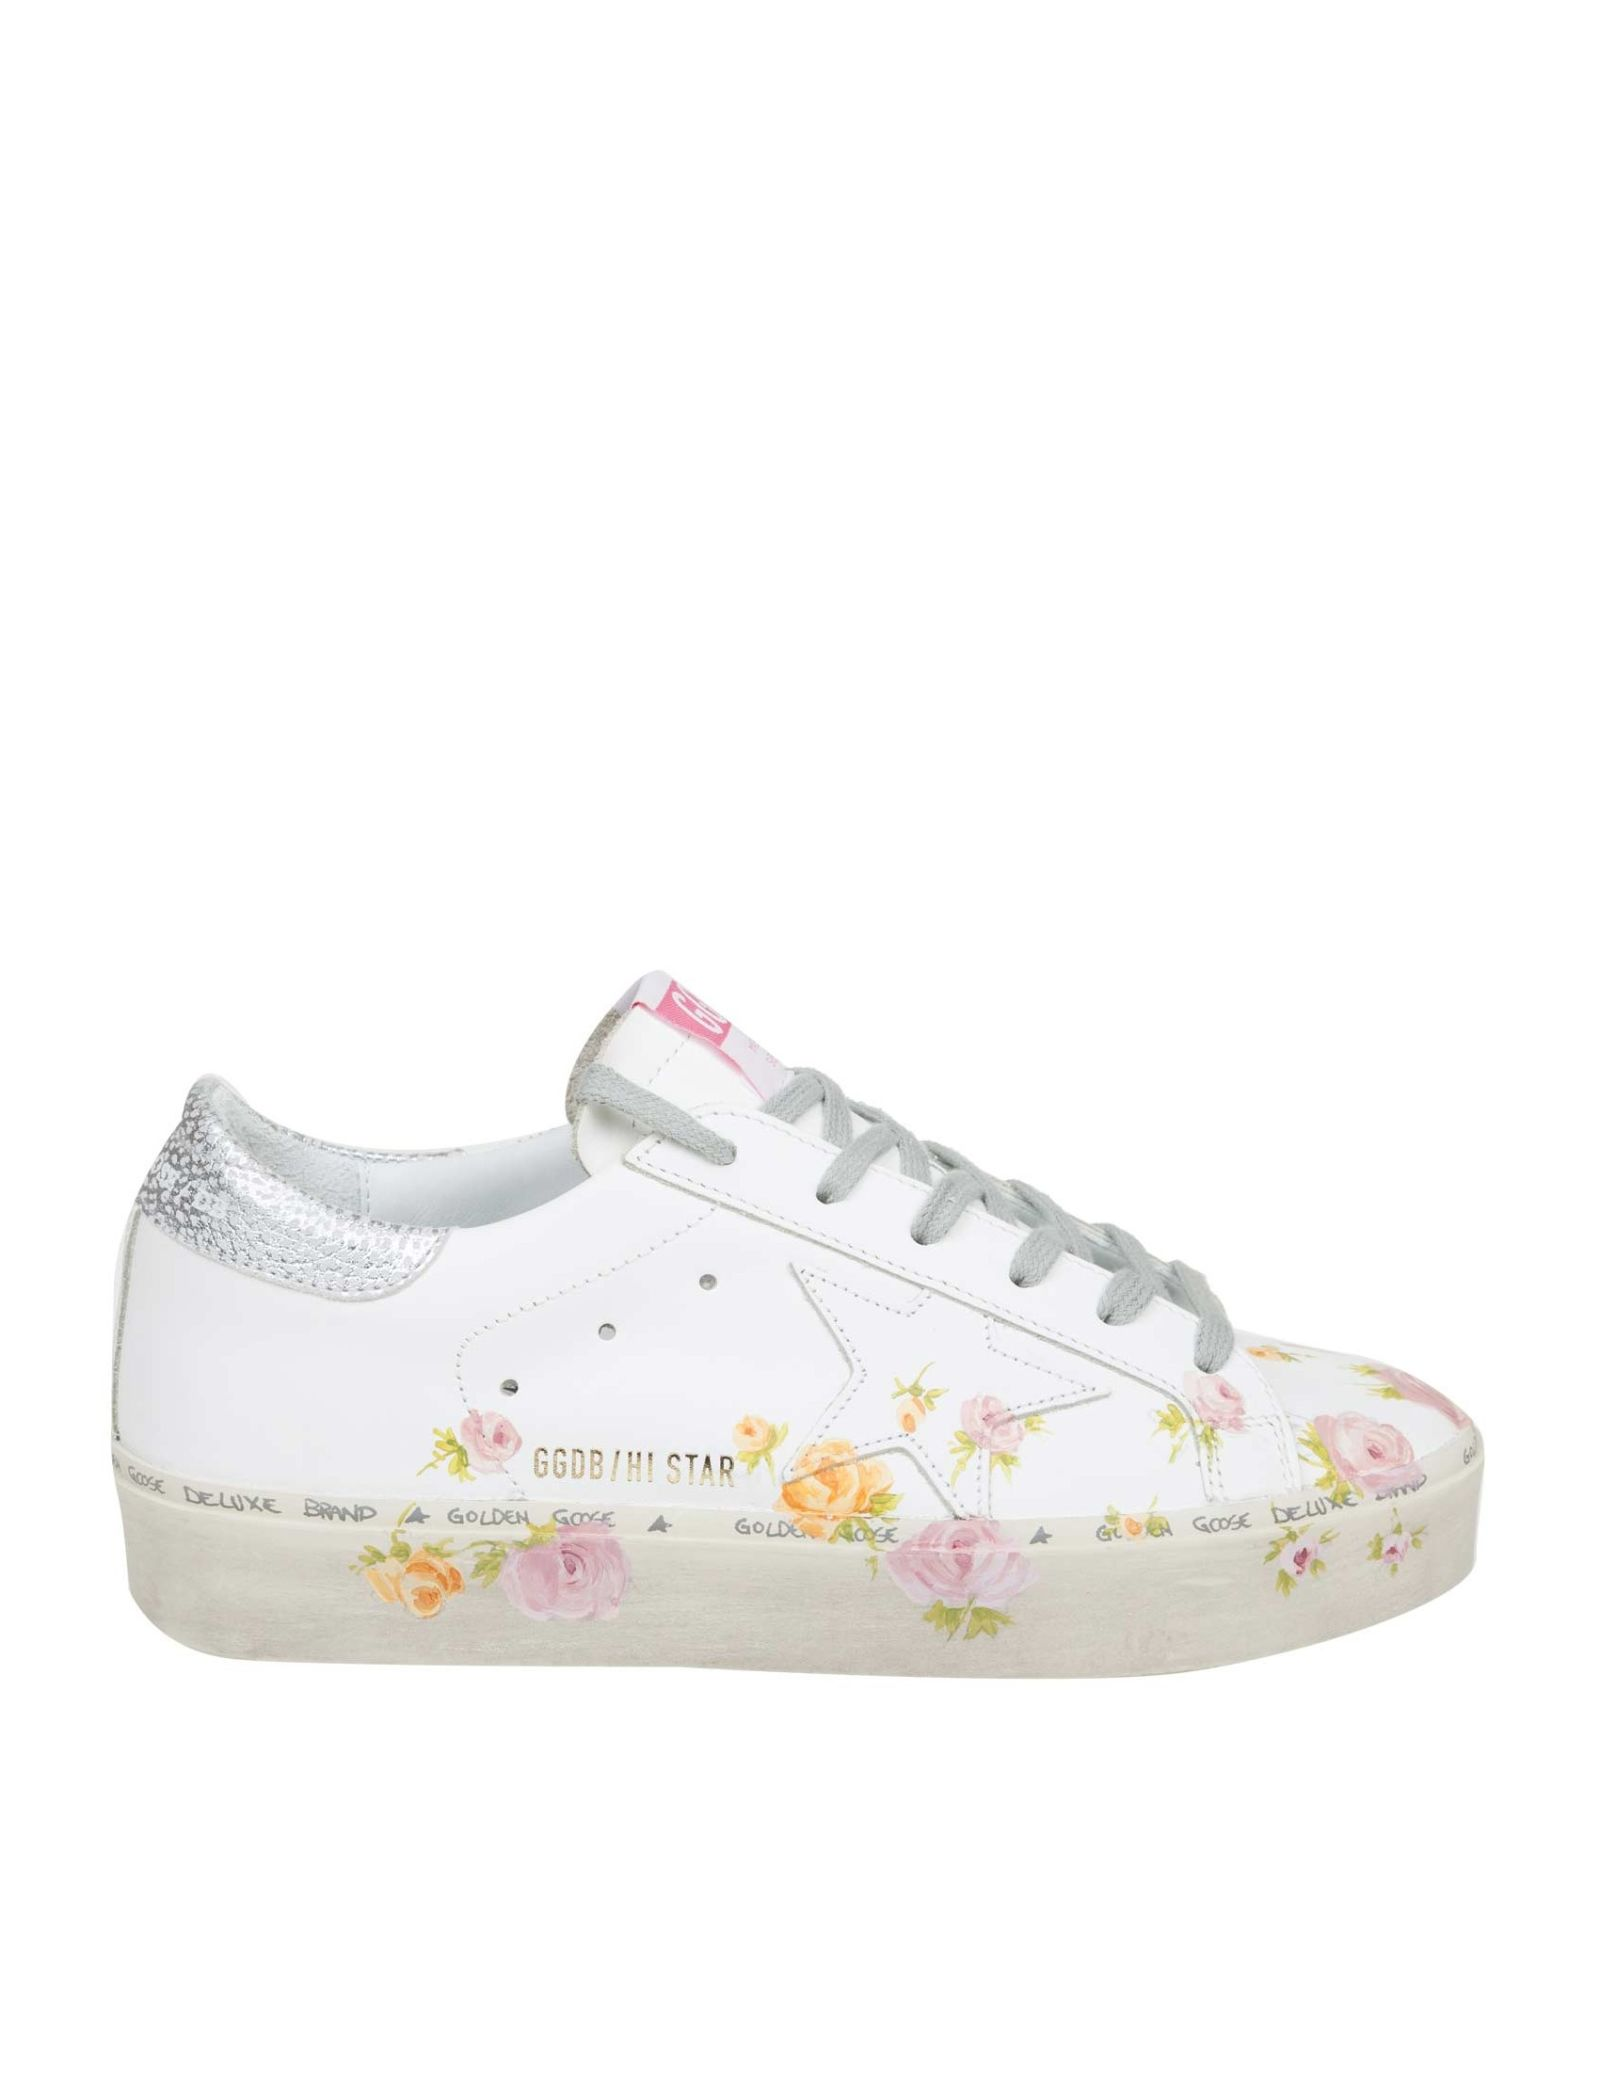 23d89bc0afba Golden Goose Hi Star Sneakers In White Leather With Floral Print - White ...